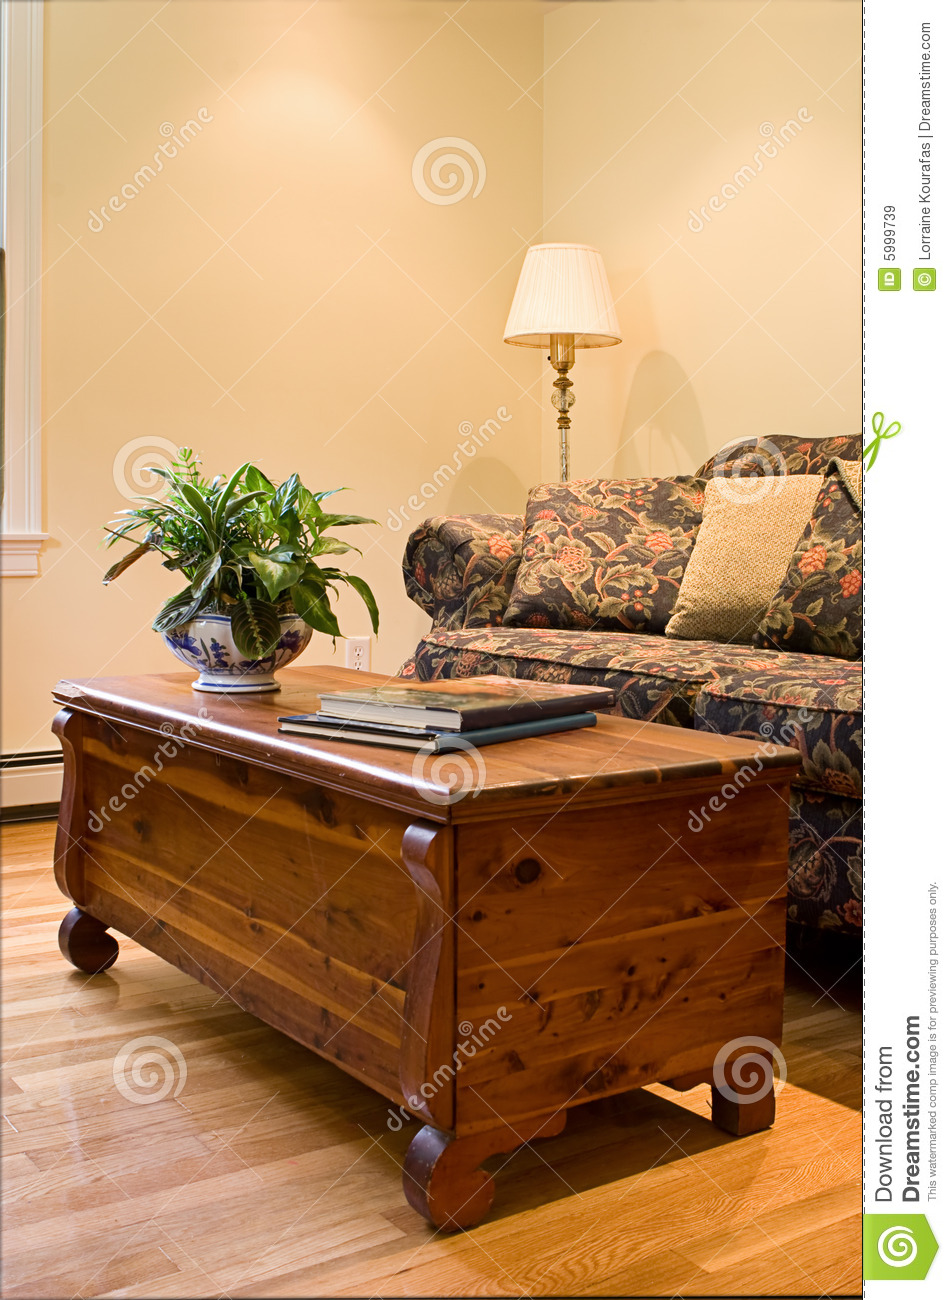 Warm and inviting home interior royalty free stock images for Inviting interiors